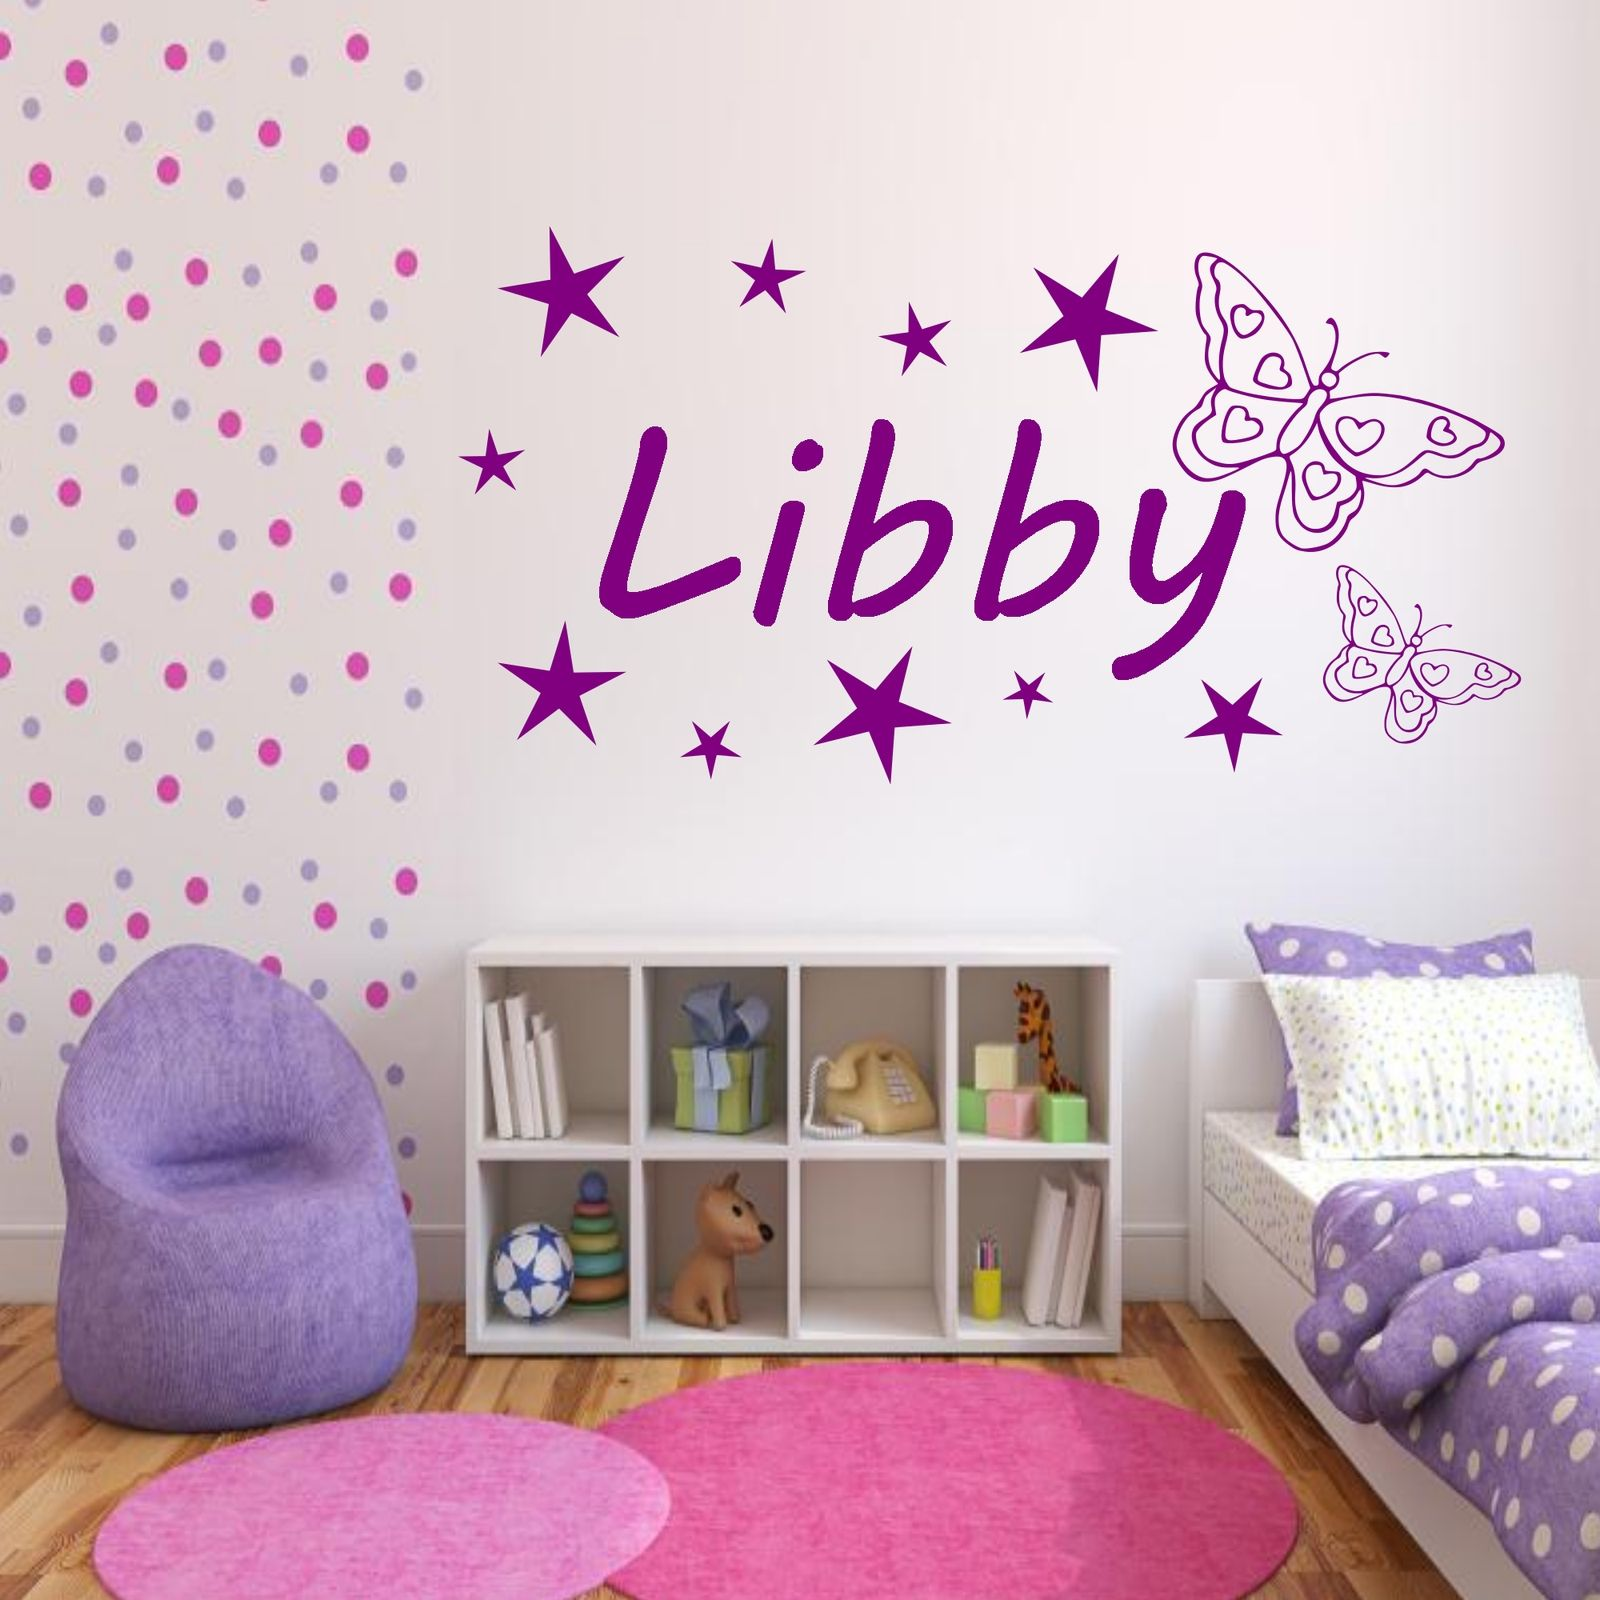 Personalised-Girls-Name-Butterfly-Bedroom-Wall-Art-Stickers-  sc 1 st  eBay & Personalised Girls Name Butterfly Bedroom Wall Art Stickers Decal ...